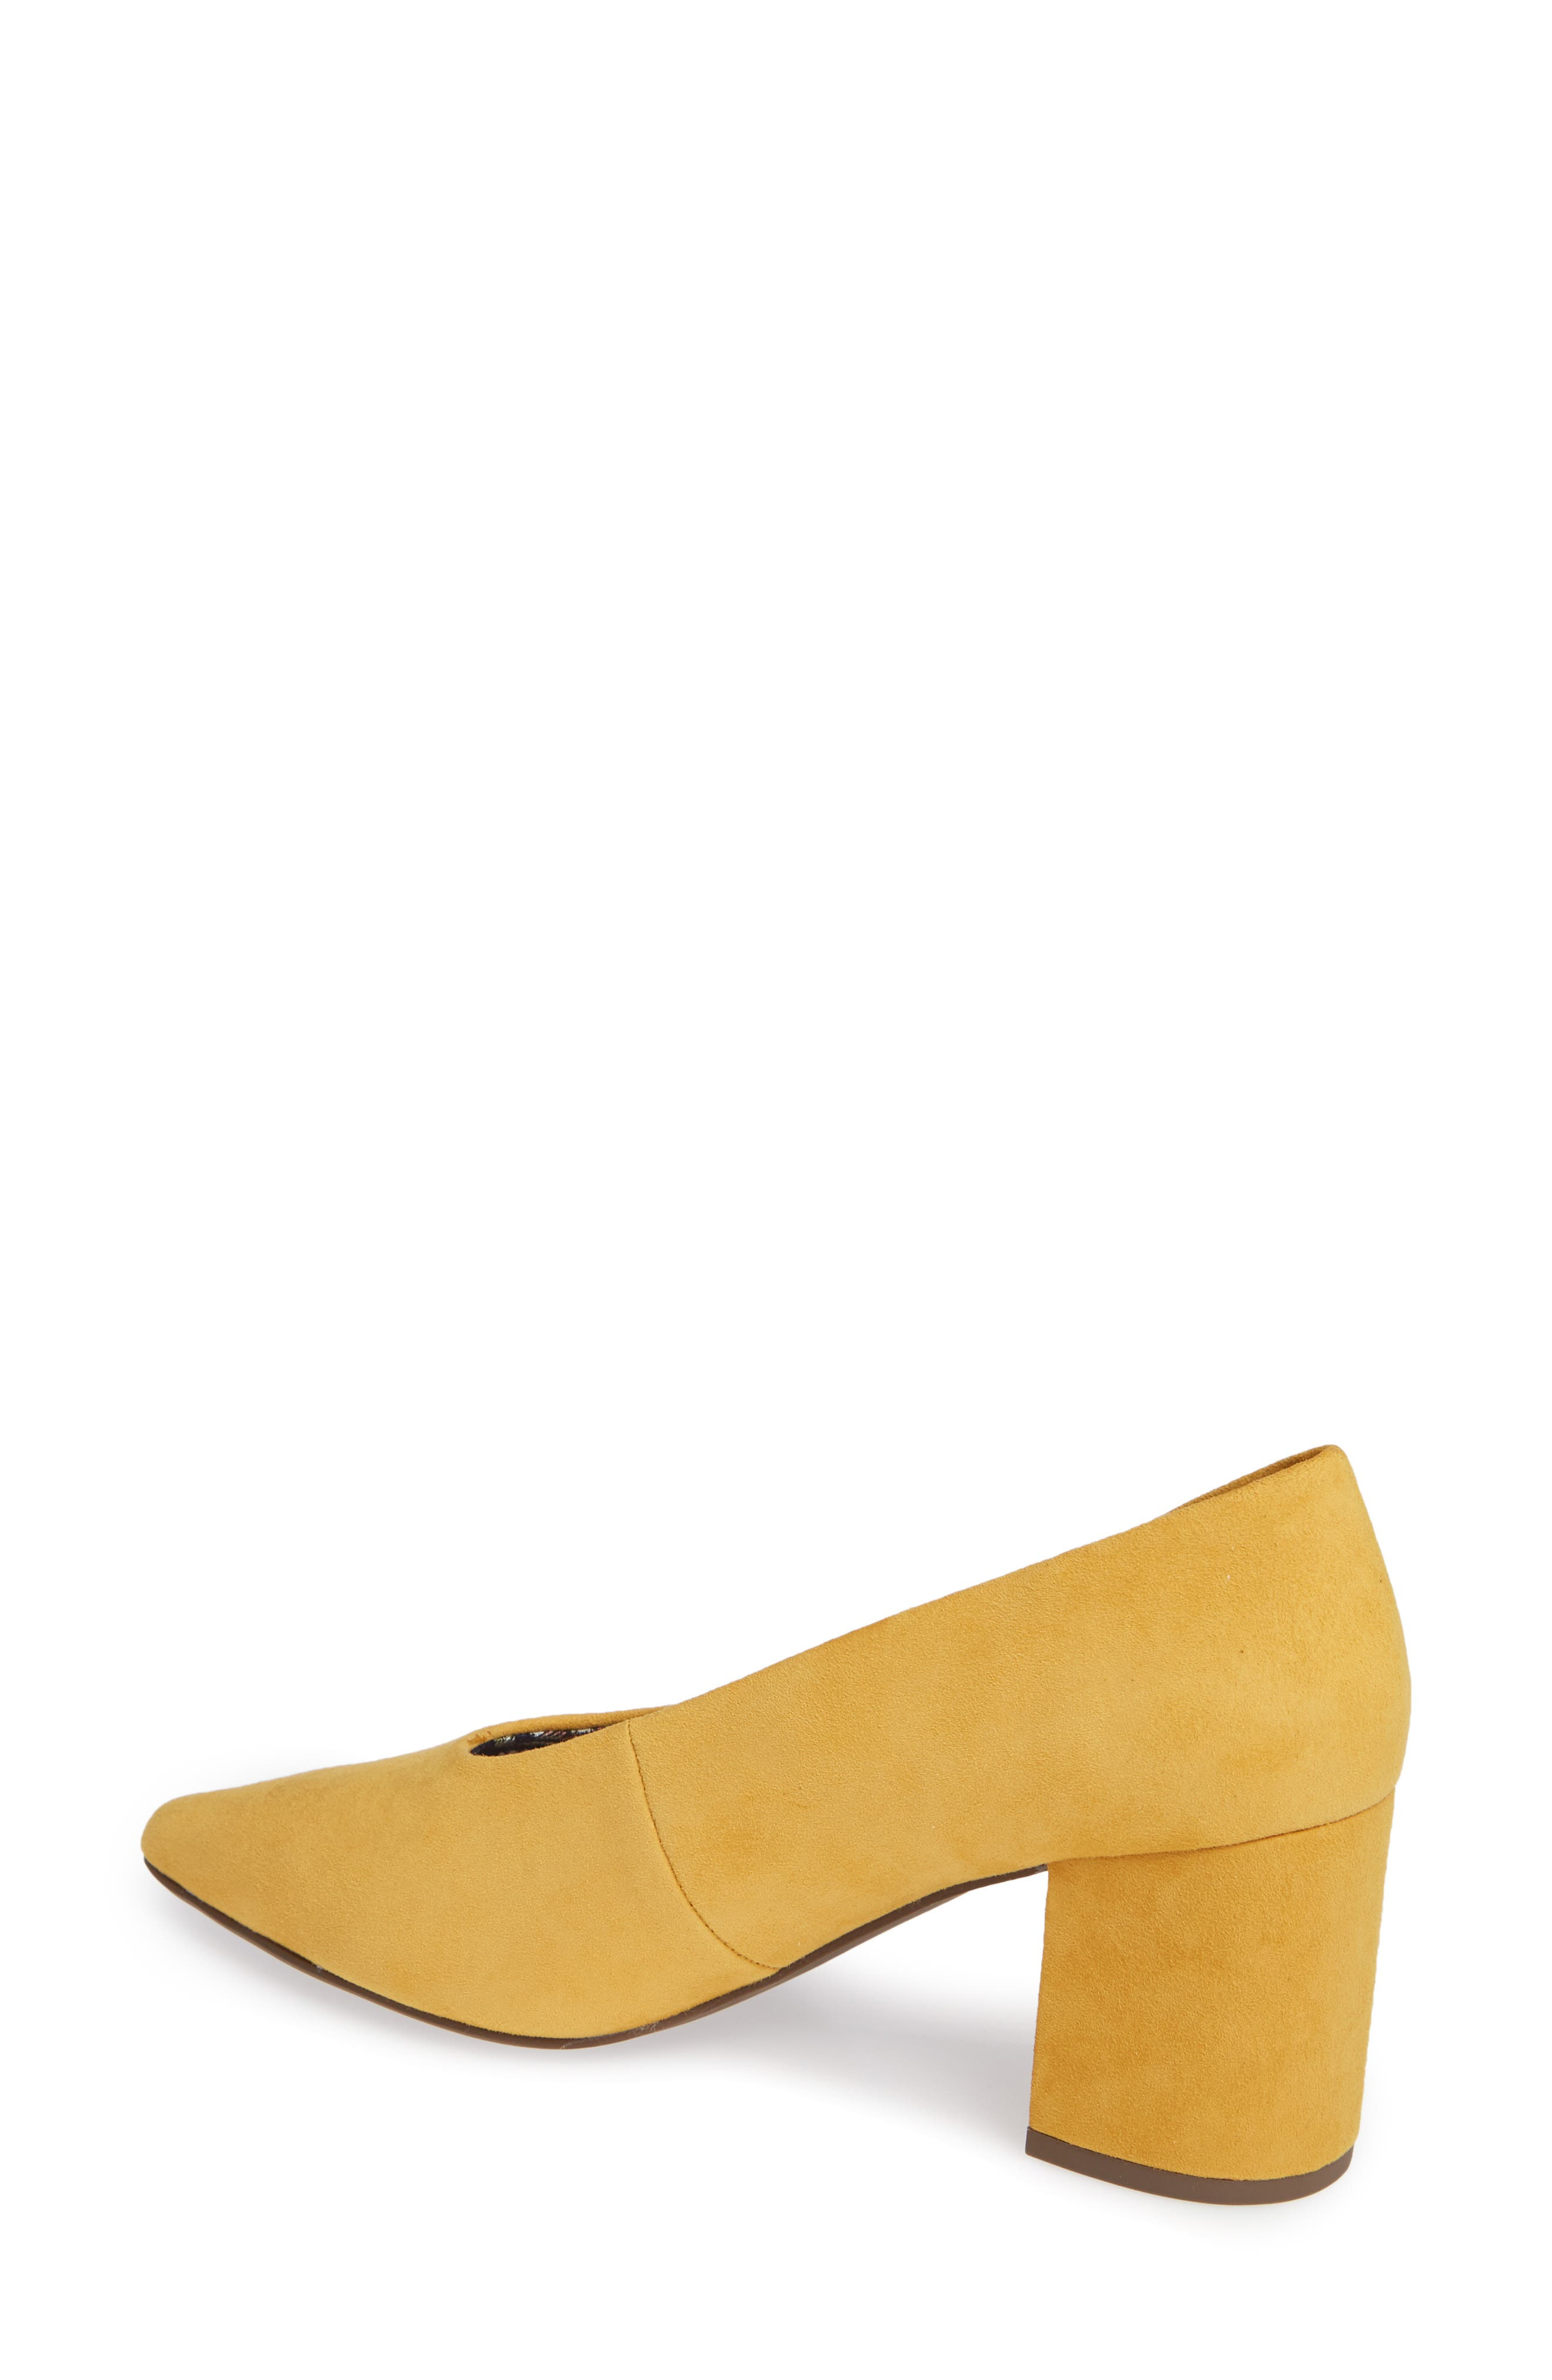 Rehearse Pointy Toe Pump,                             Alternate thumbnail 8, color,